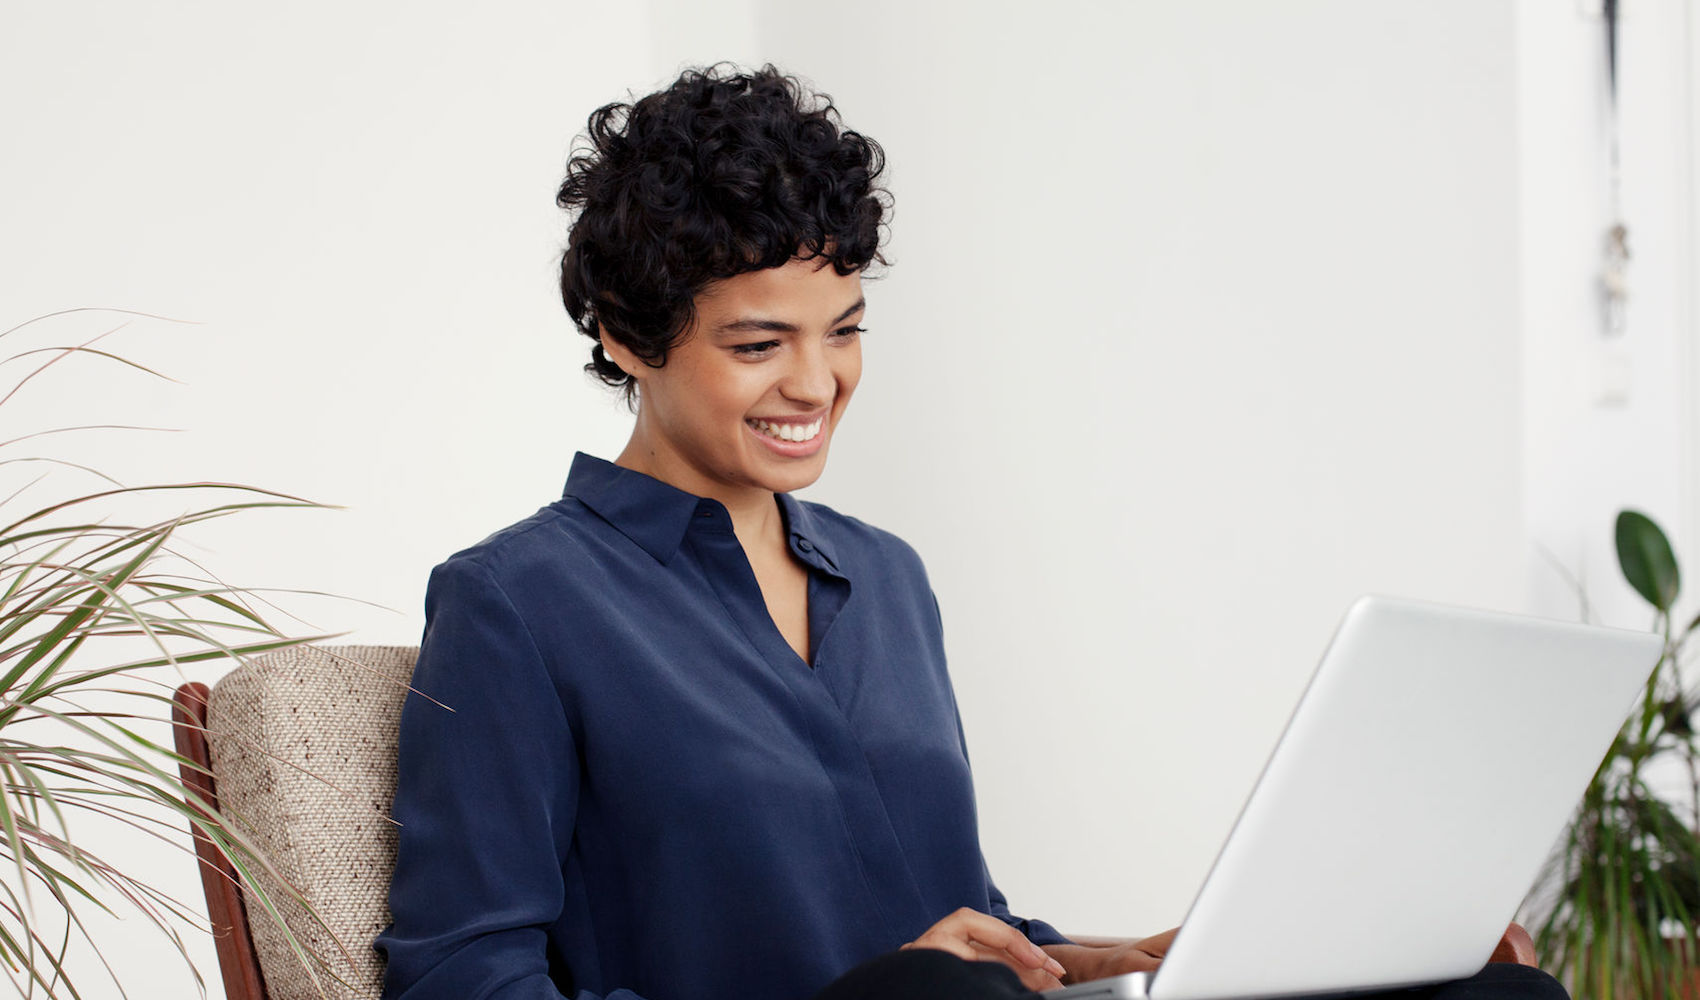 Portrait Of A Woman Using A Laptop Computer In Her Home.